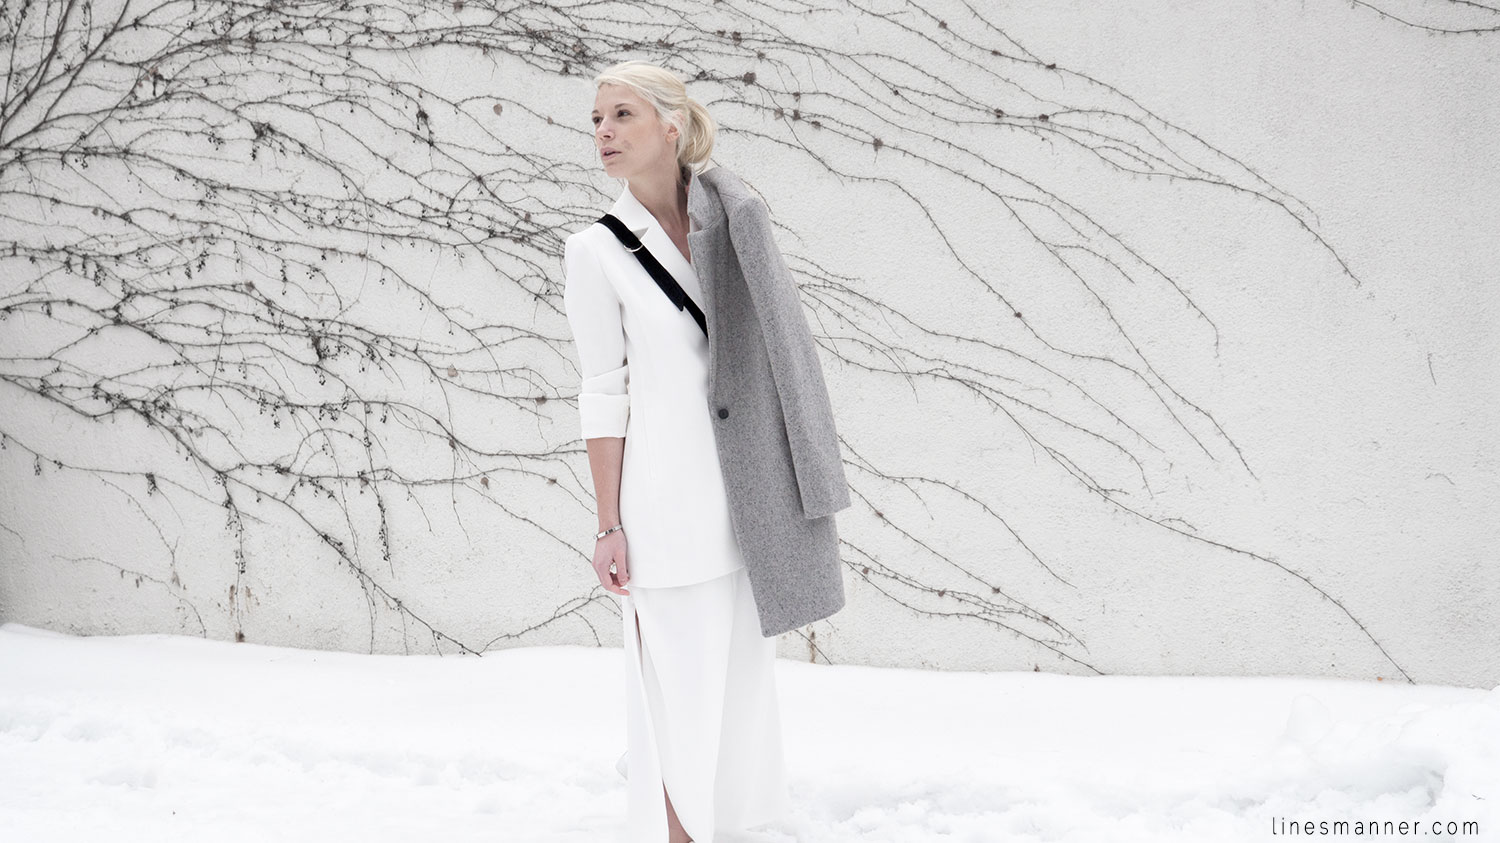 Lines-Manner-White_on_White-All_white-relaxed-shapes-tailored-blazer-pantsuit-clean-details-staples-essentials-sleek-LXE-box bag-light-fresh-slouchy-2